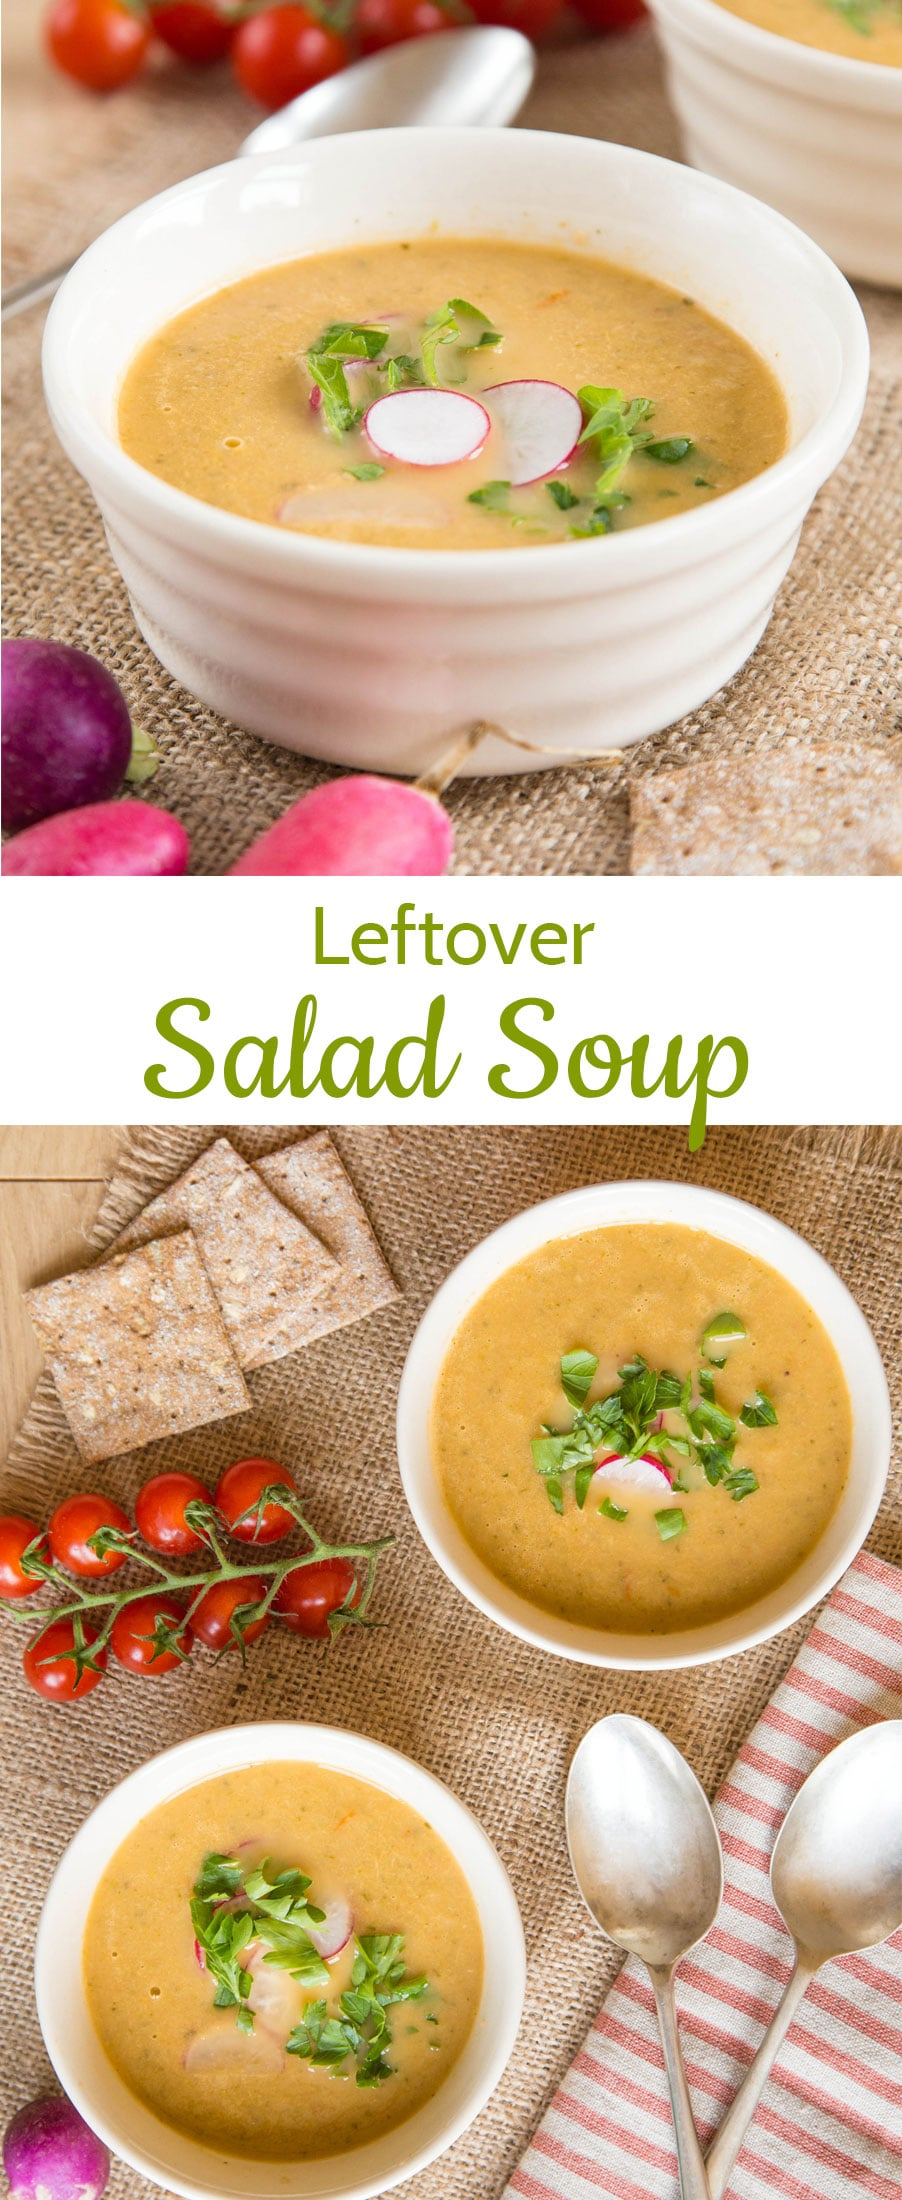 Leftover salad soup recipe quick easy delicious - What to do with leftover whites and yolks four simple recipes ...